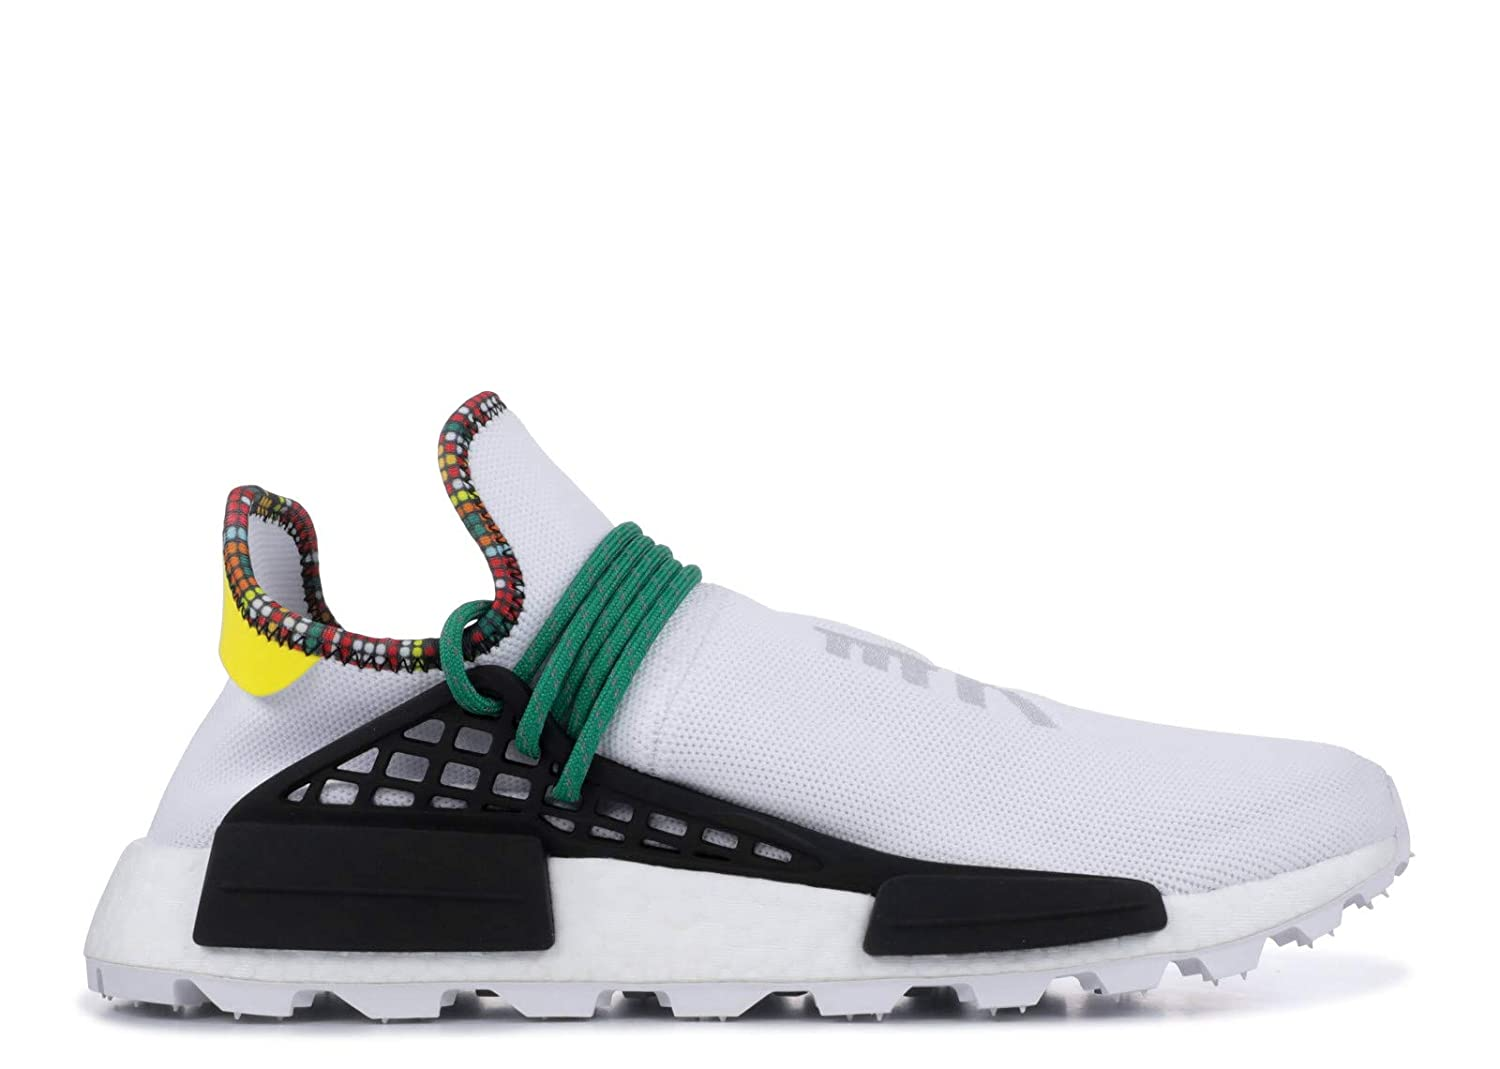 brand new c2b5e 3a13c adidas NMD HU Human Race Pharrell Williams Inspiration Pack White EE7583 US  Size 9